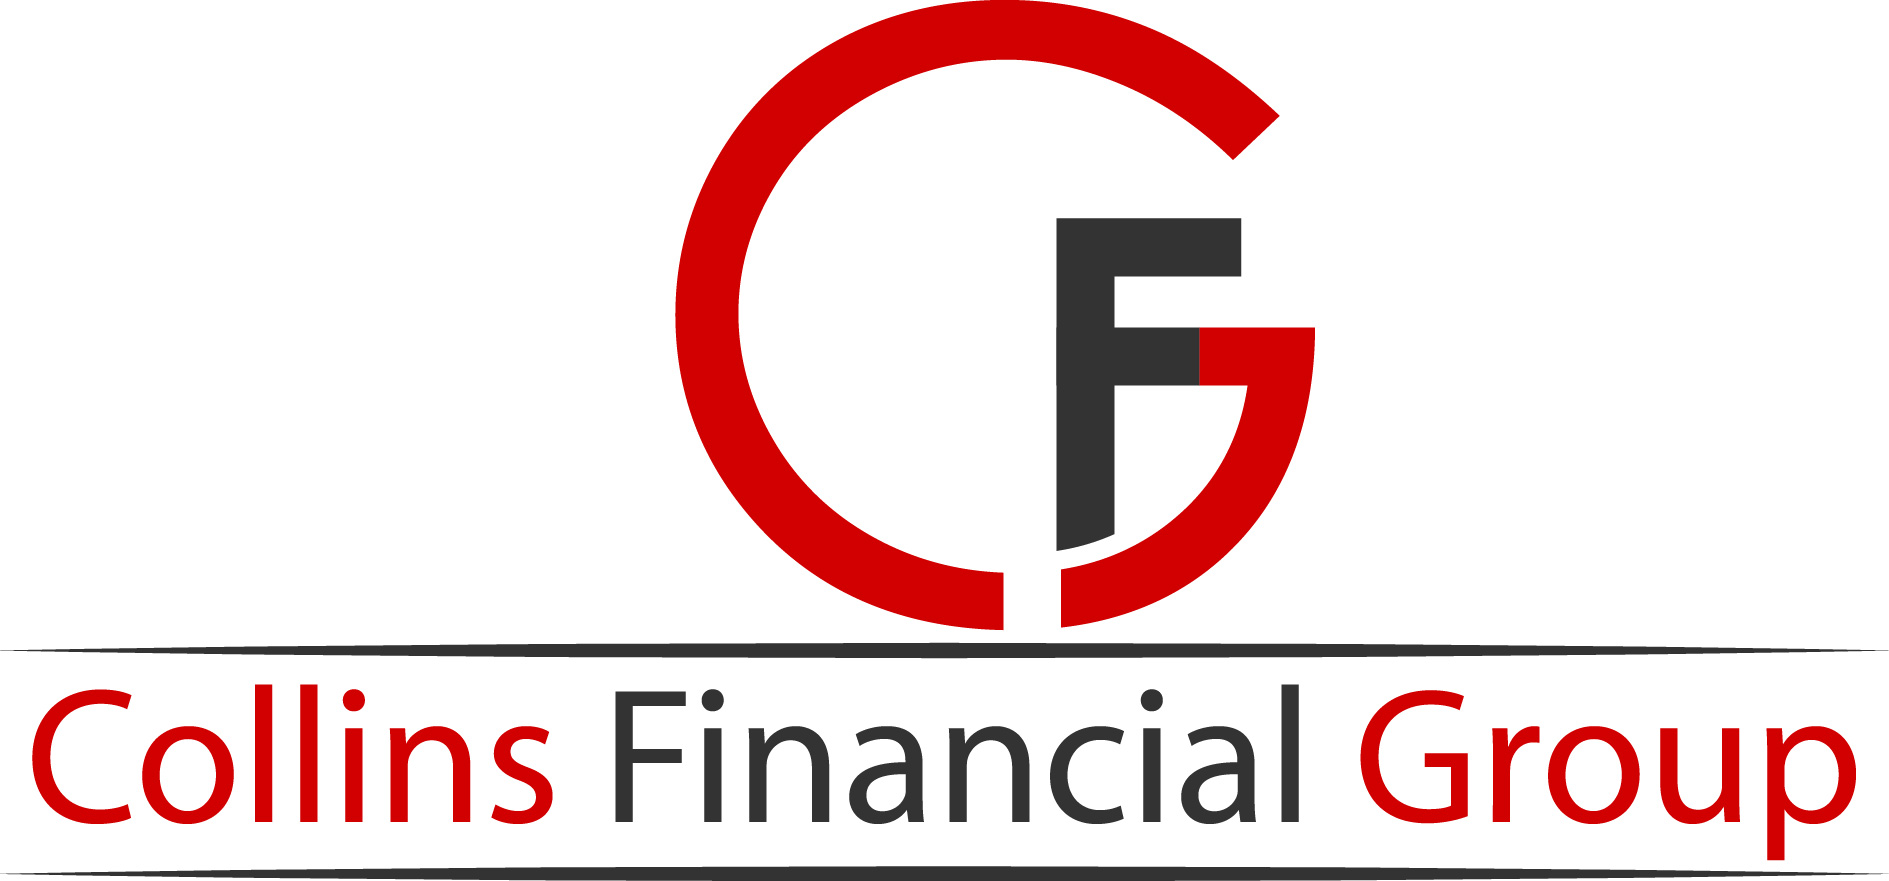 Collins Financial Group Provides Multiple Financial Planning Services All in One Roof